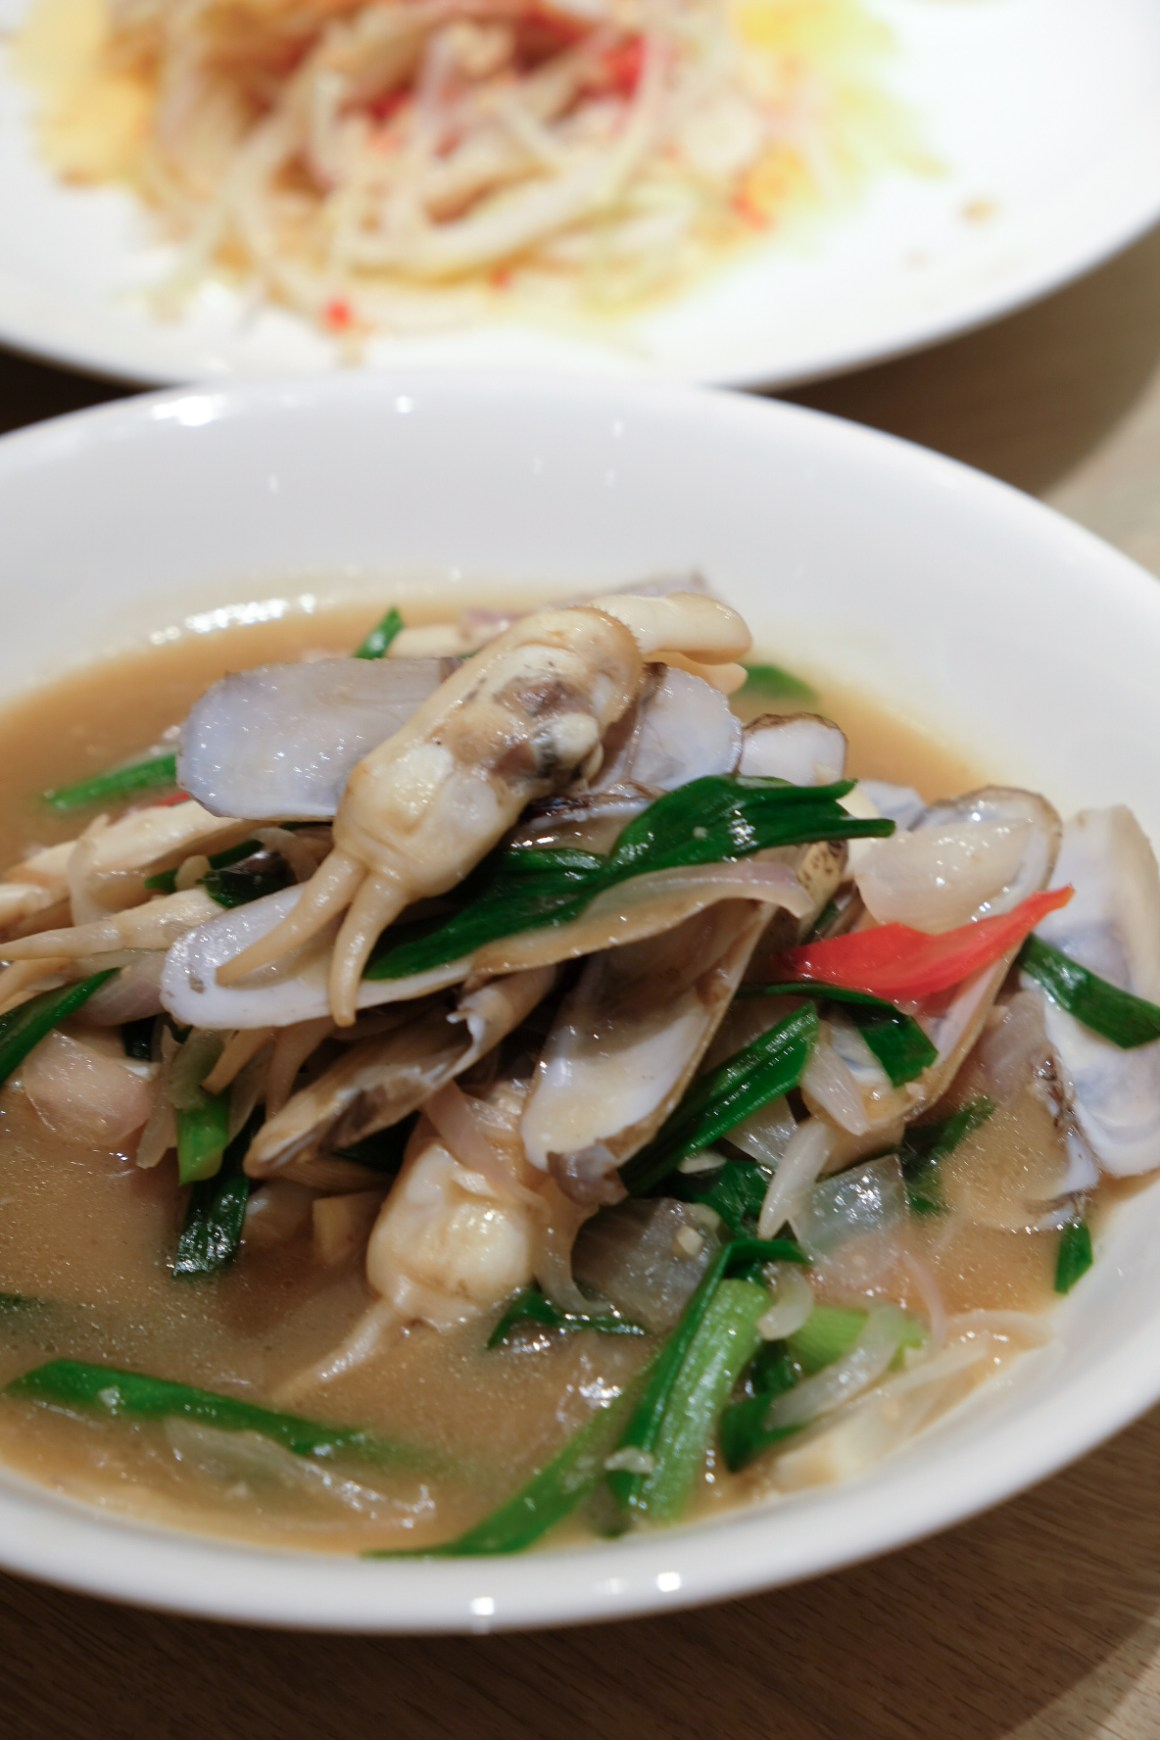 Stir-fried DUO TOU Clam with Ginger and Spring Onion 姜葱炒蛏